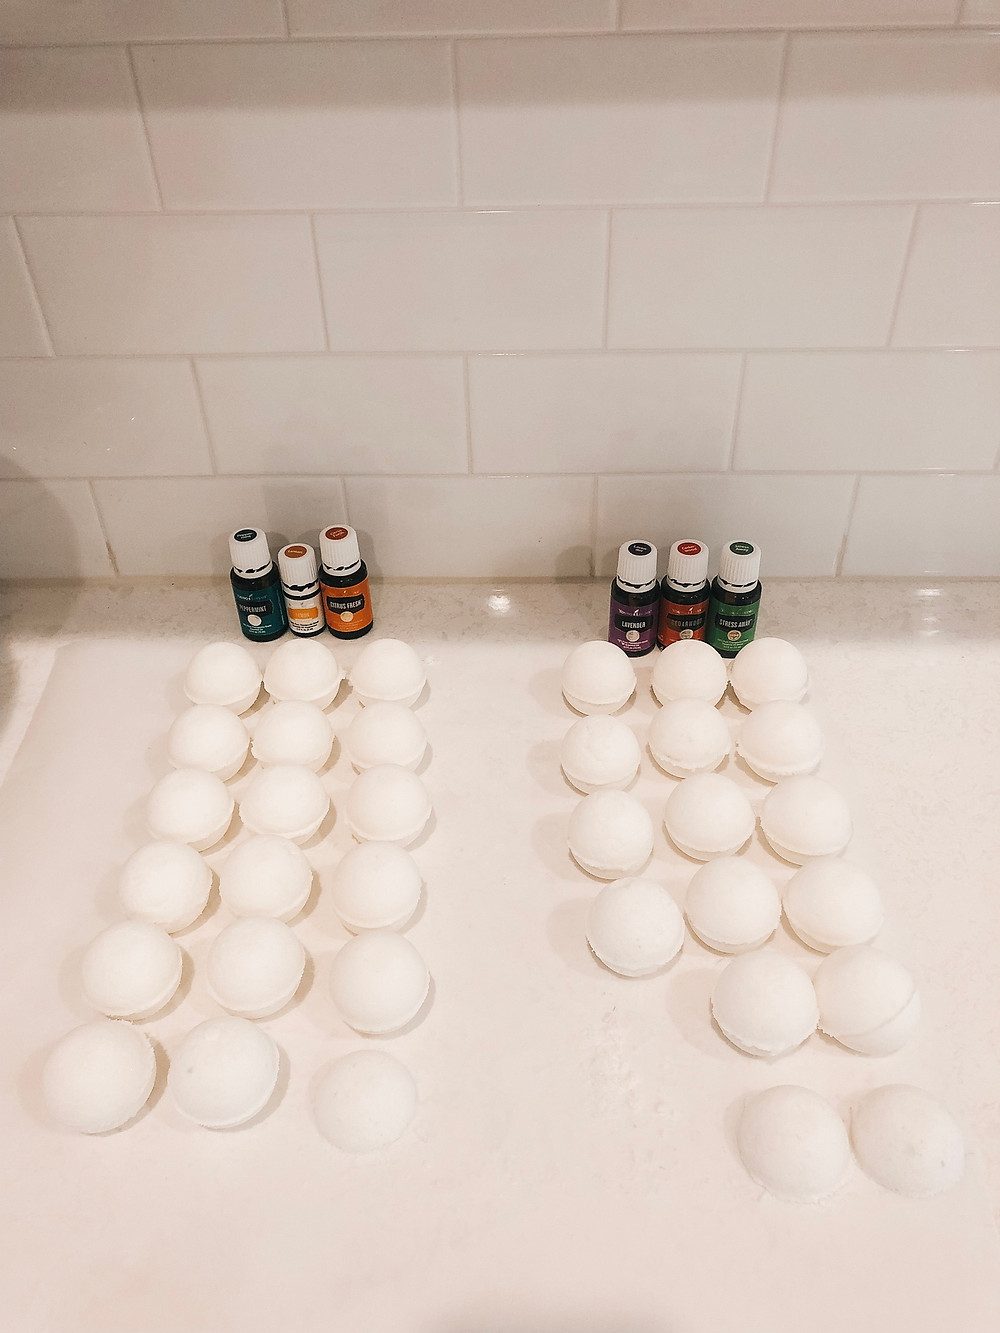 DIY, Bath bombs, essential oils, young living, Christmas gifts, teacher gifts, toxin-free, chemical-free